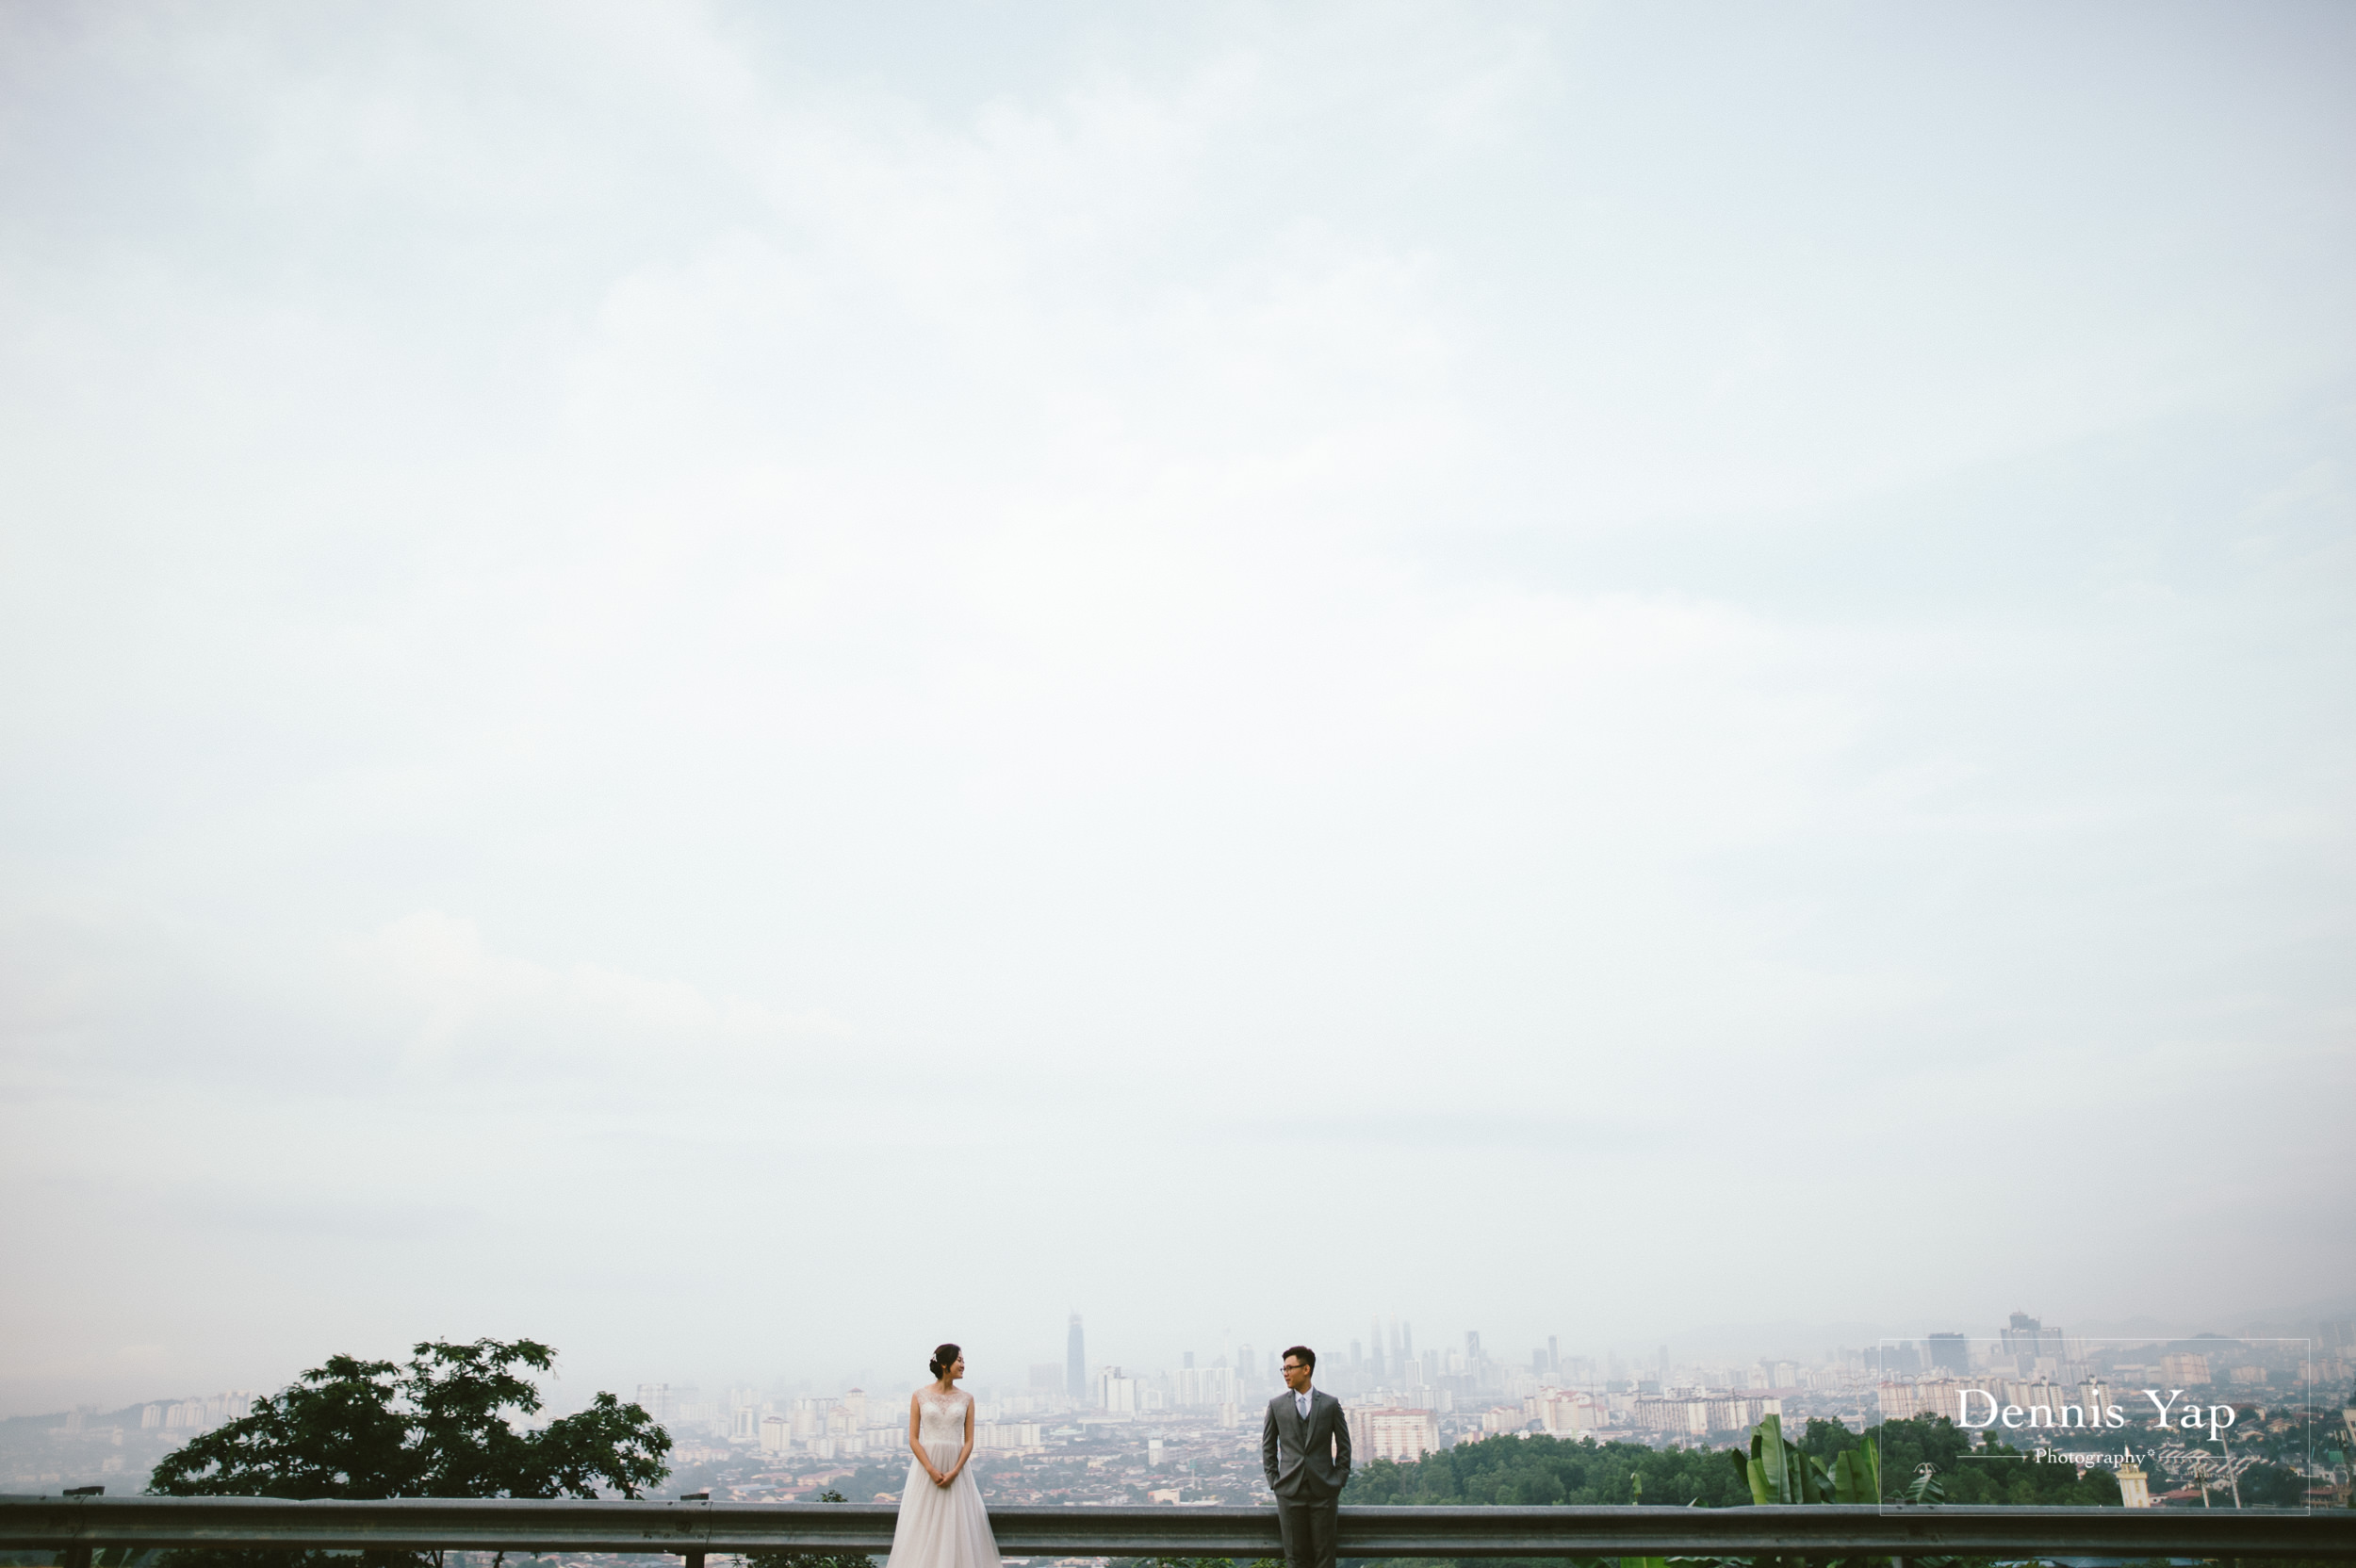 steven ching pre wedding hulu langat namwah road background beloved lookout point dennis yap photography malaysia top photographer-2.jpg